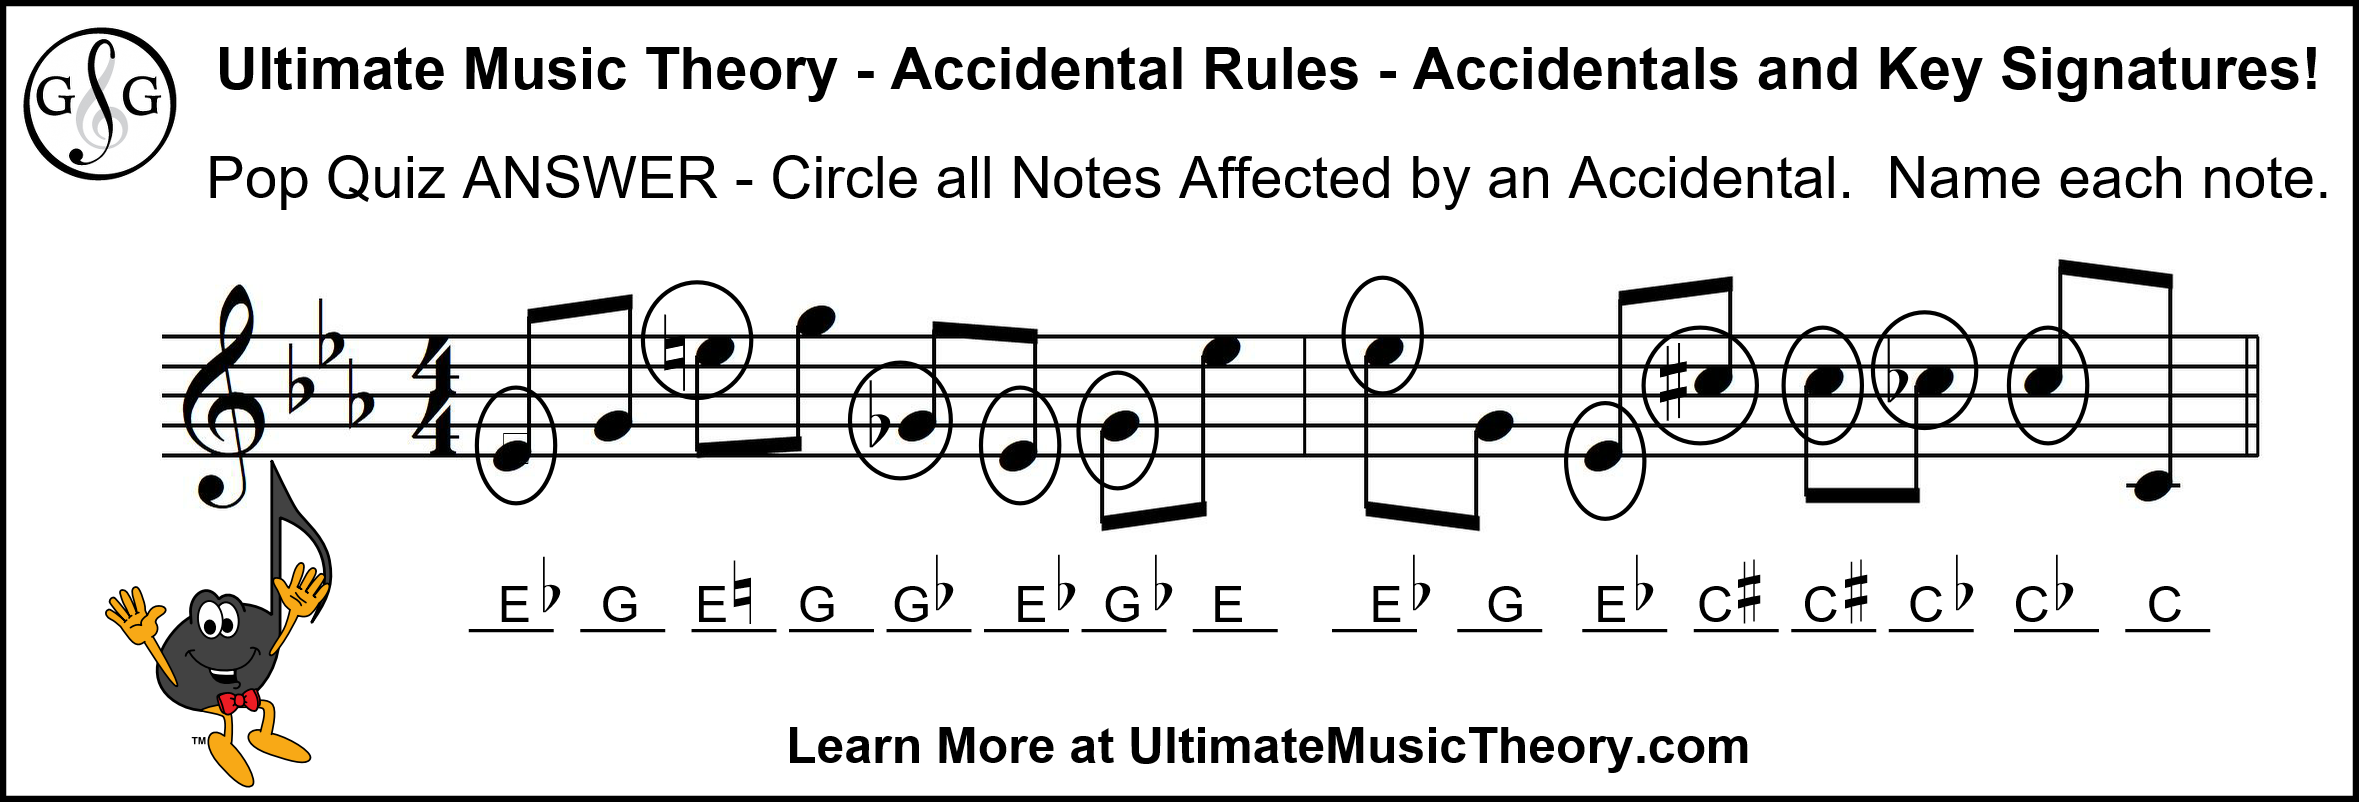 UMT Accidentals and Key Signatures Pop Quiz Answers